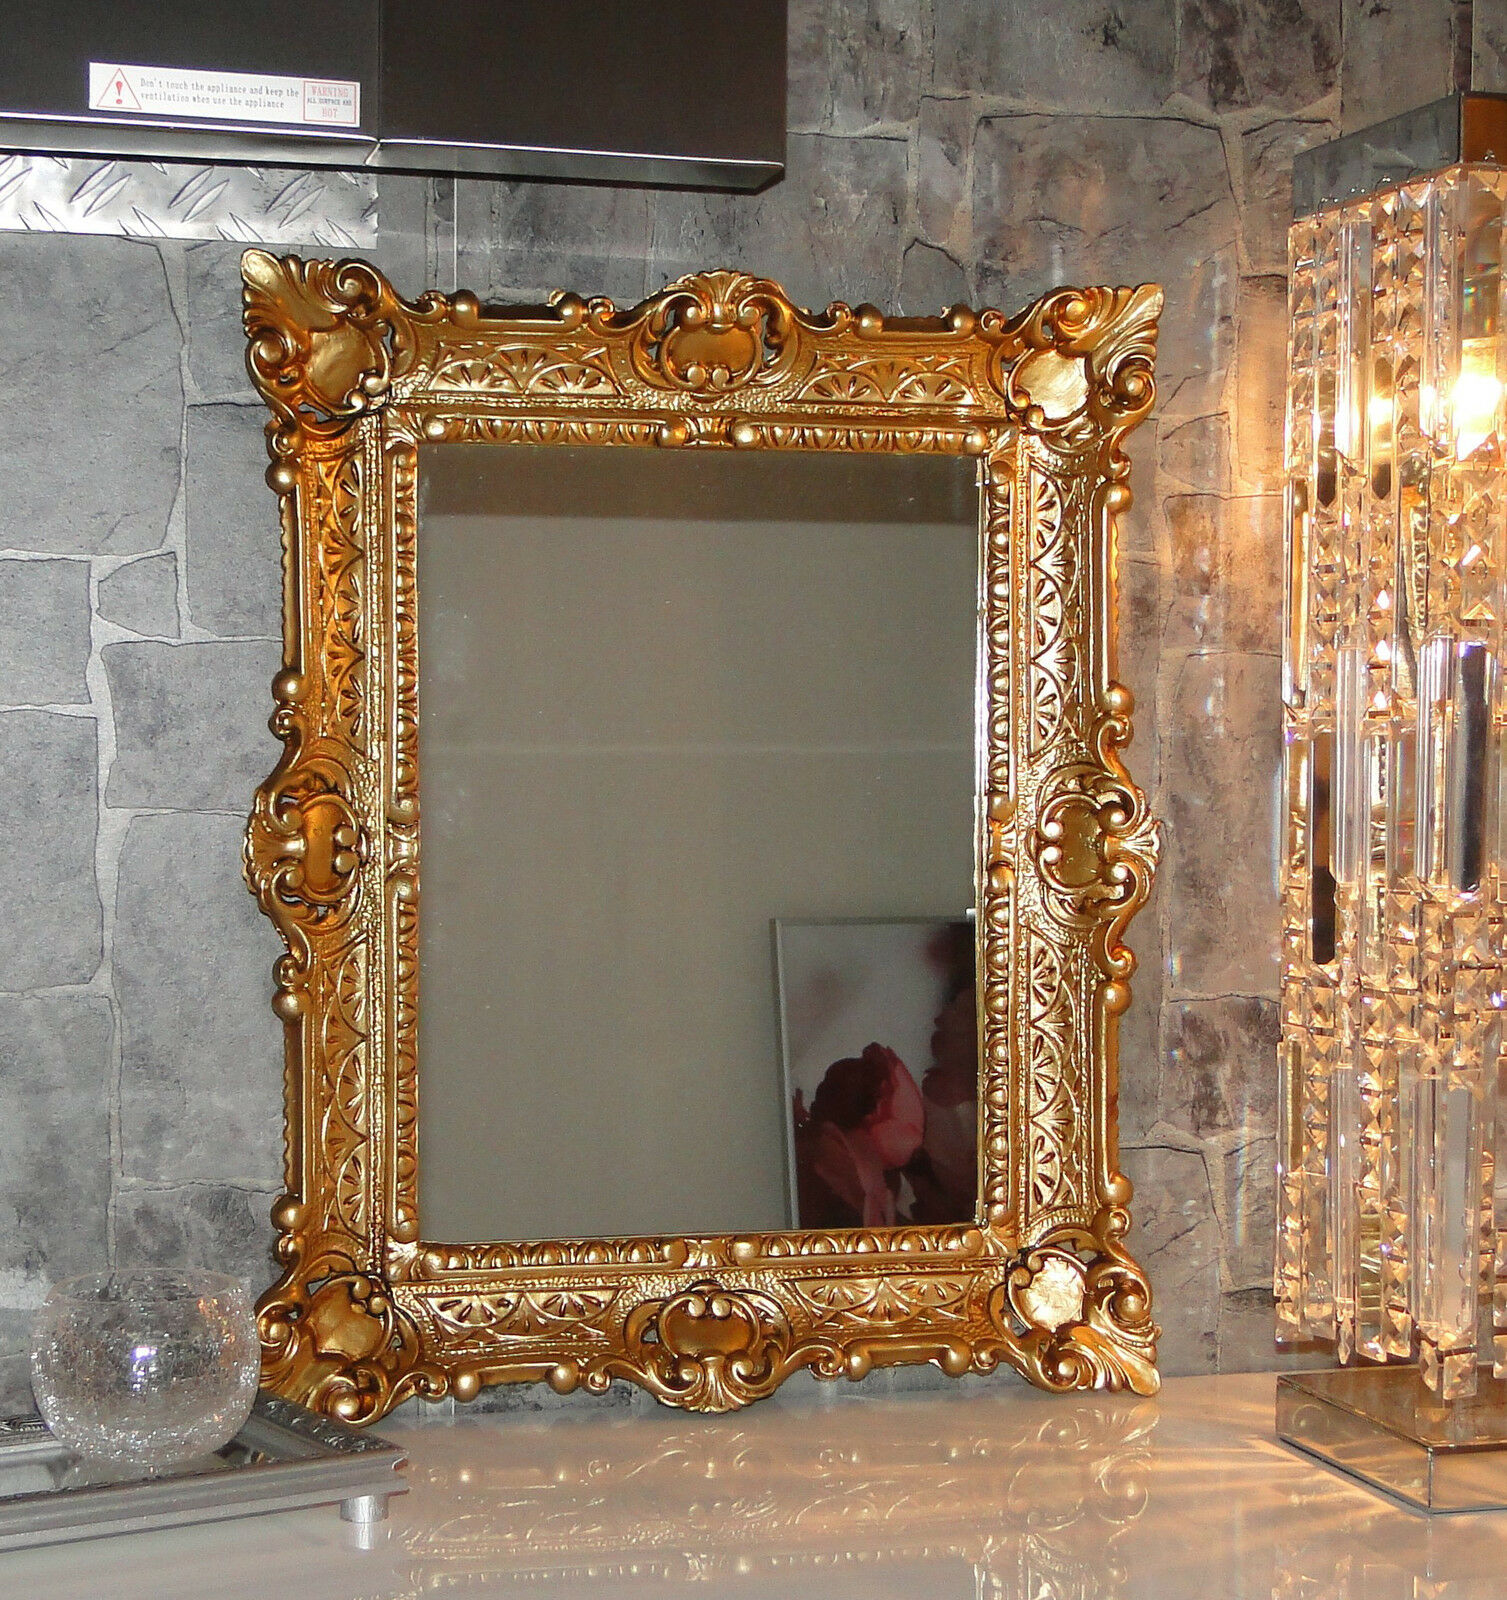 wall mirror gold antique baroque bathroom floor vanity 56x46 1 ebay. Black Bedroom Furniture Sets. Home Design Ideas